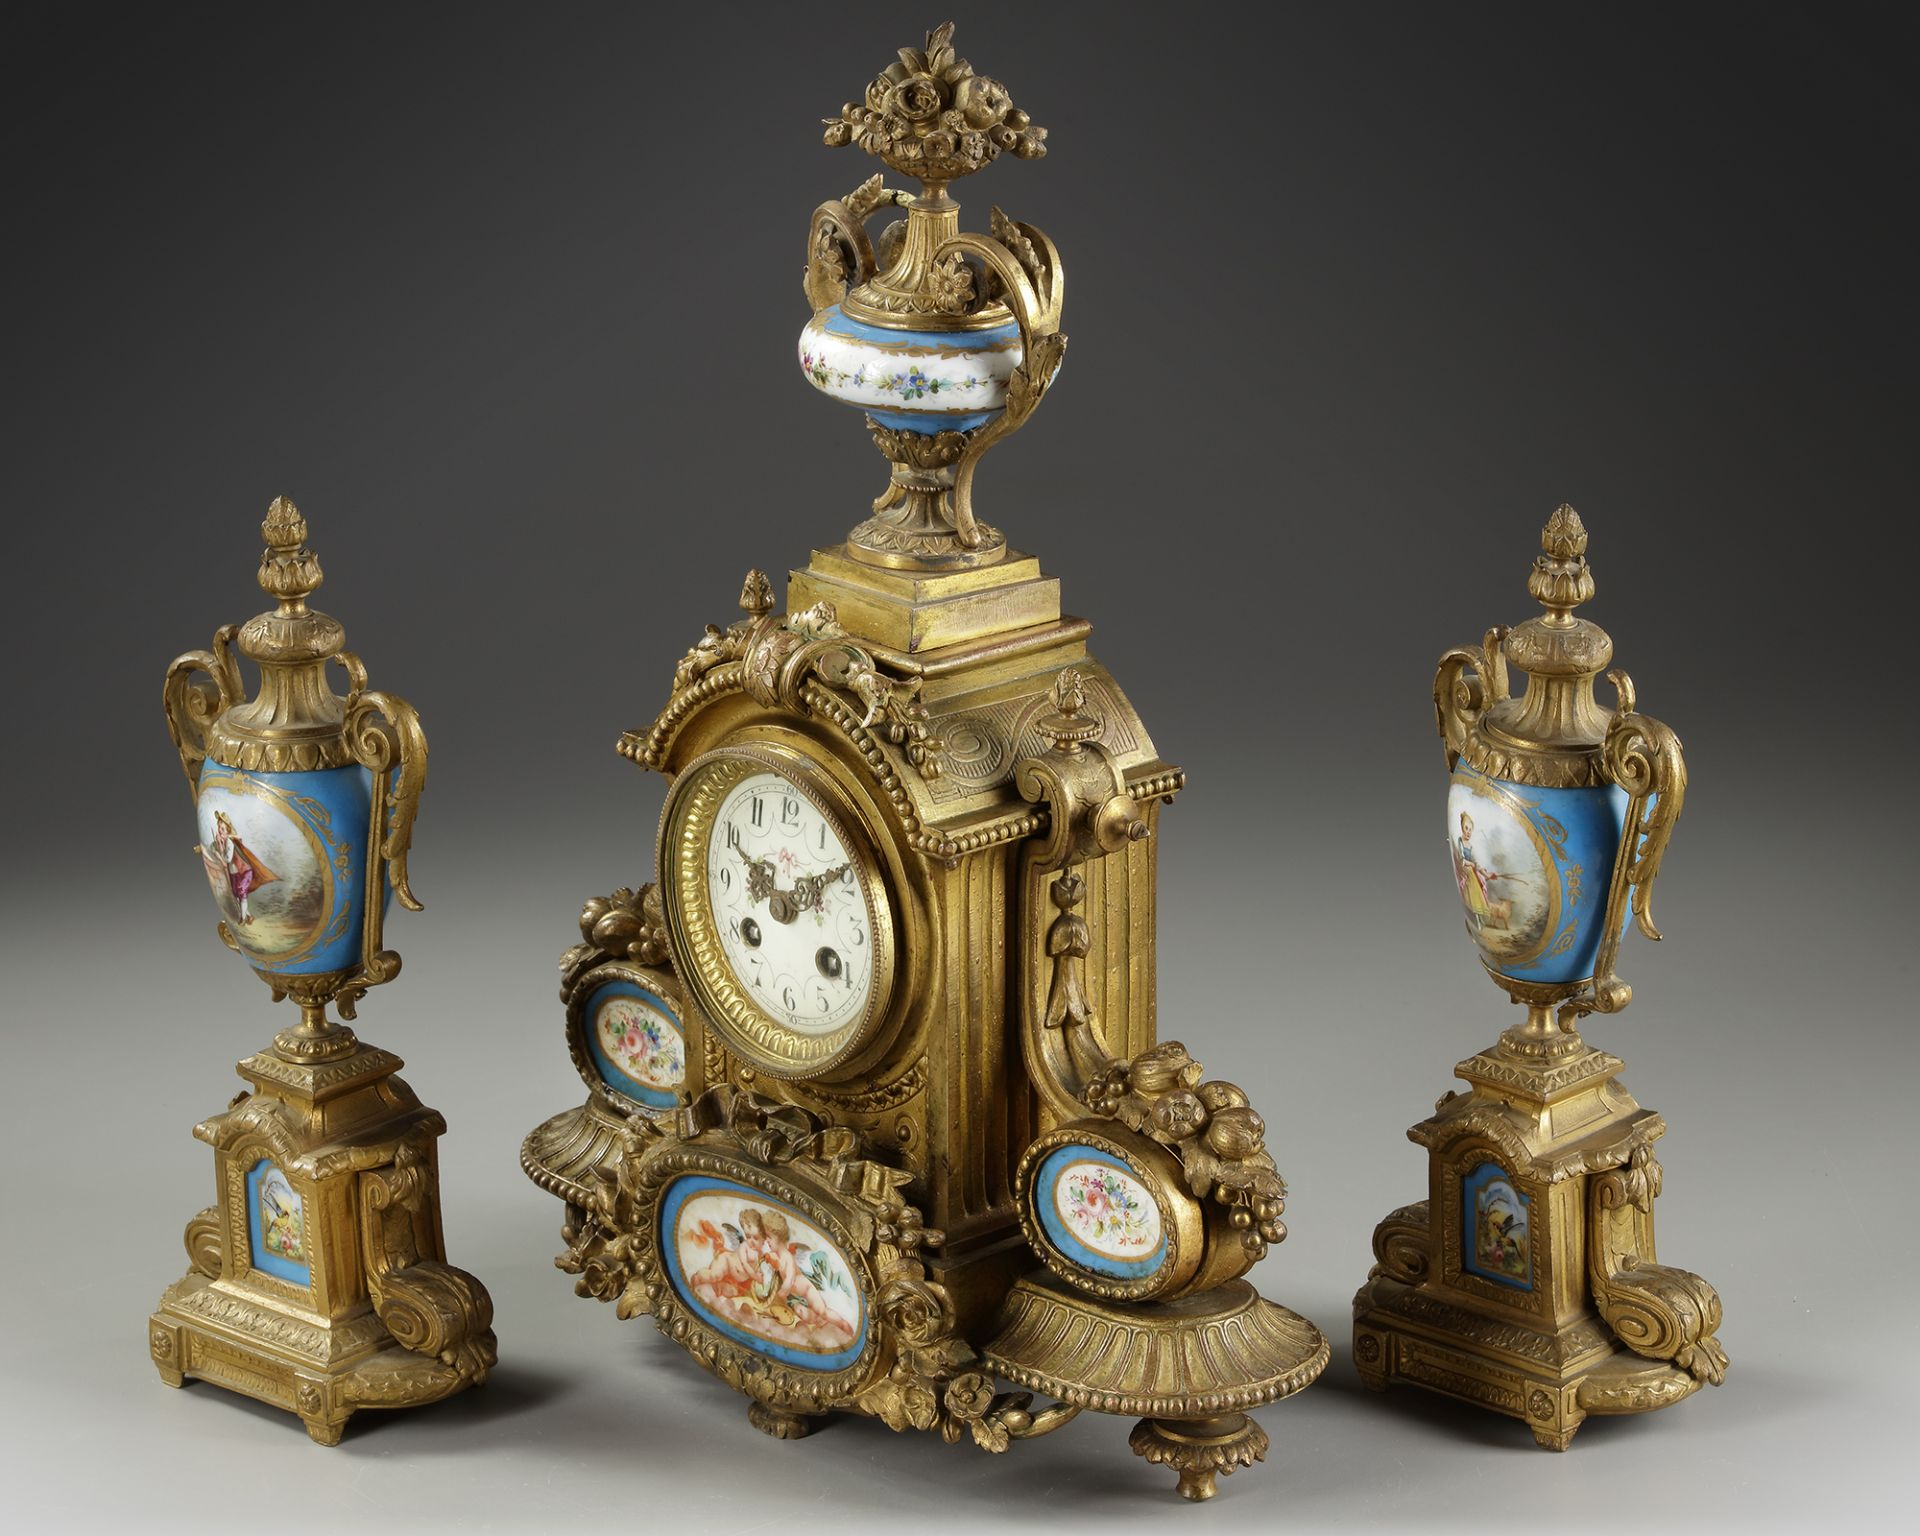 A FRENCH CLOCK SET, 19TH CENTURY - Image 2 of 3